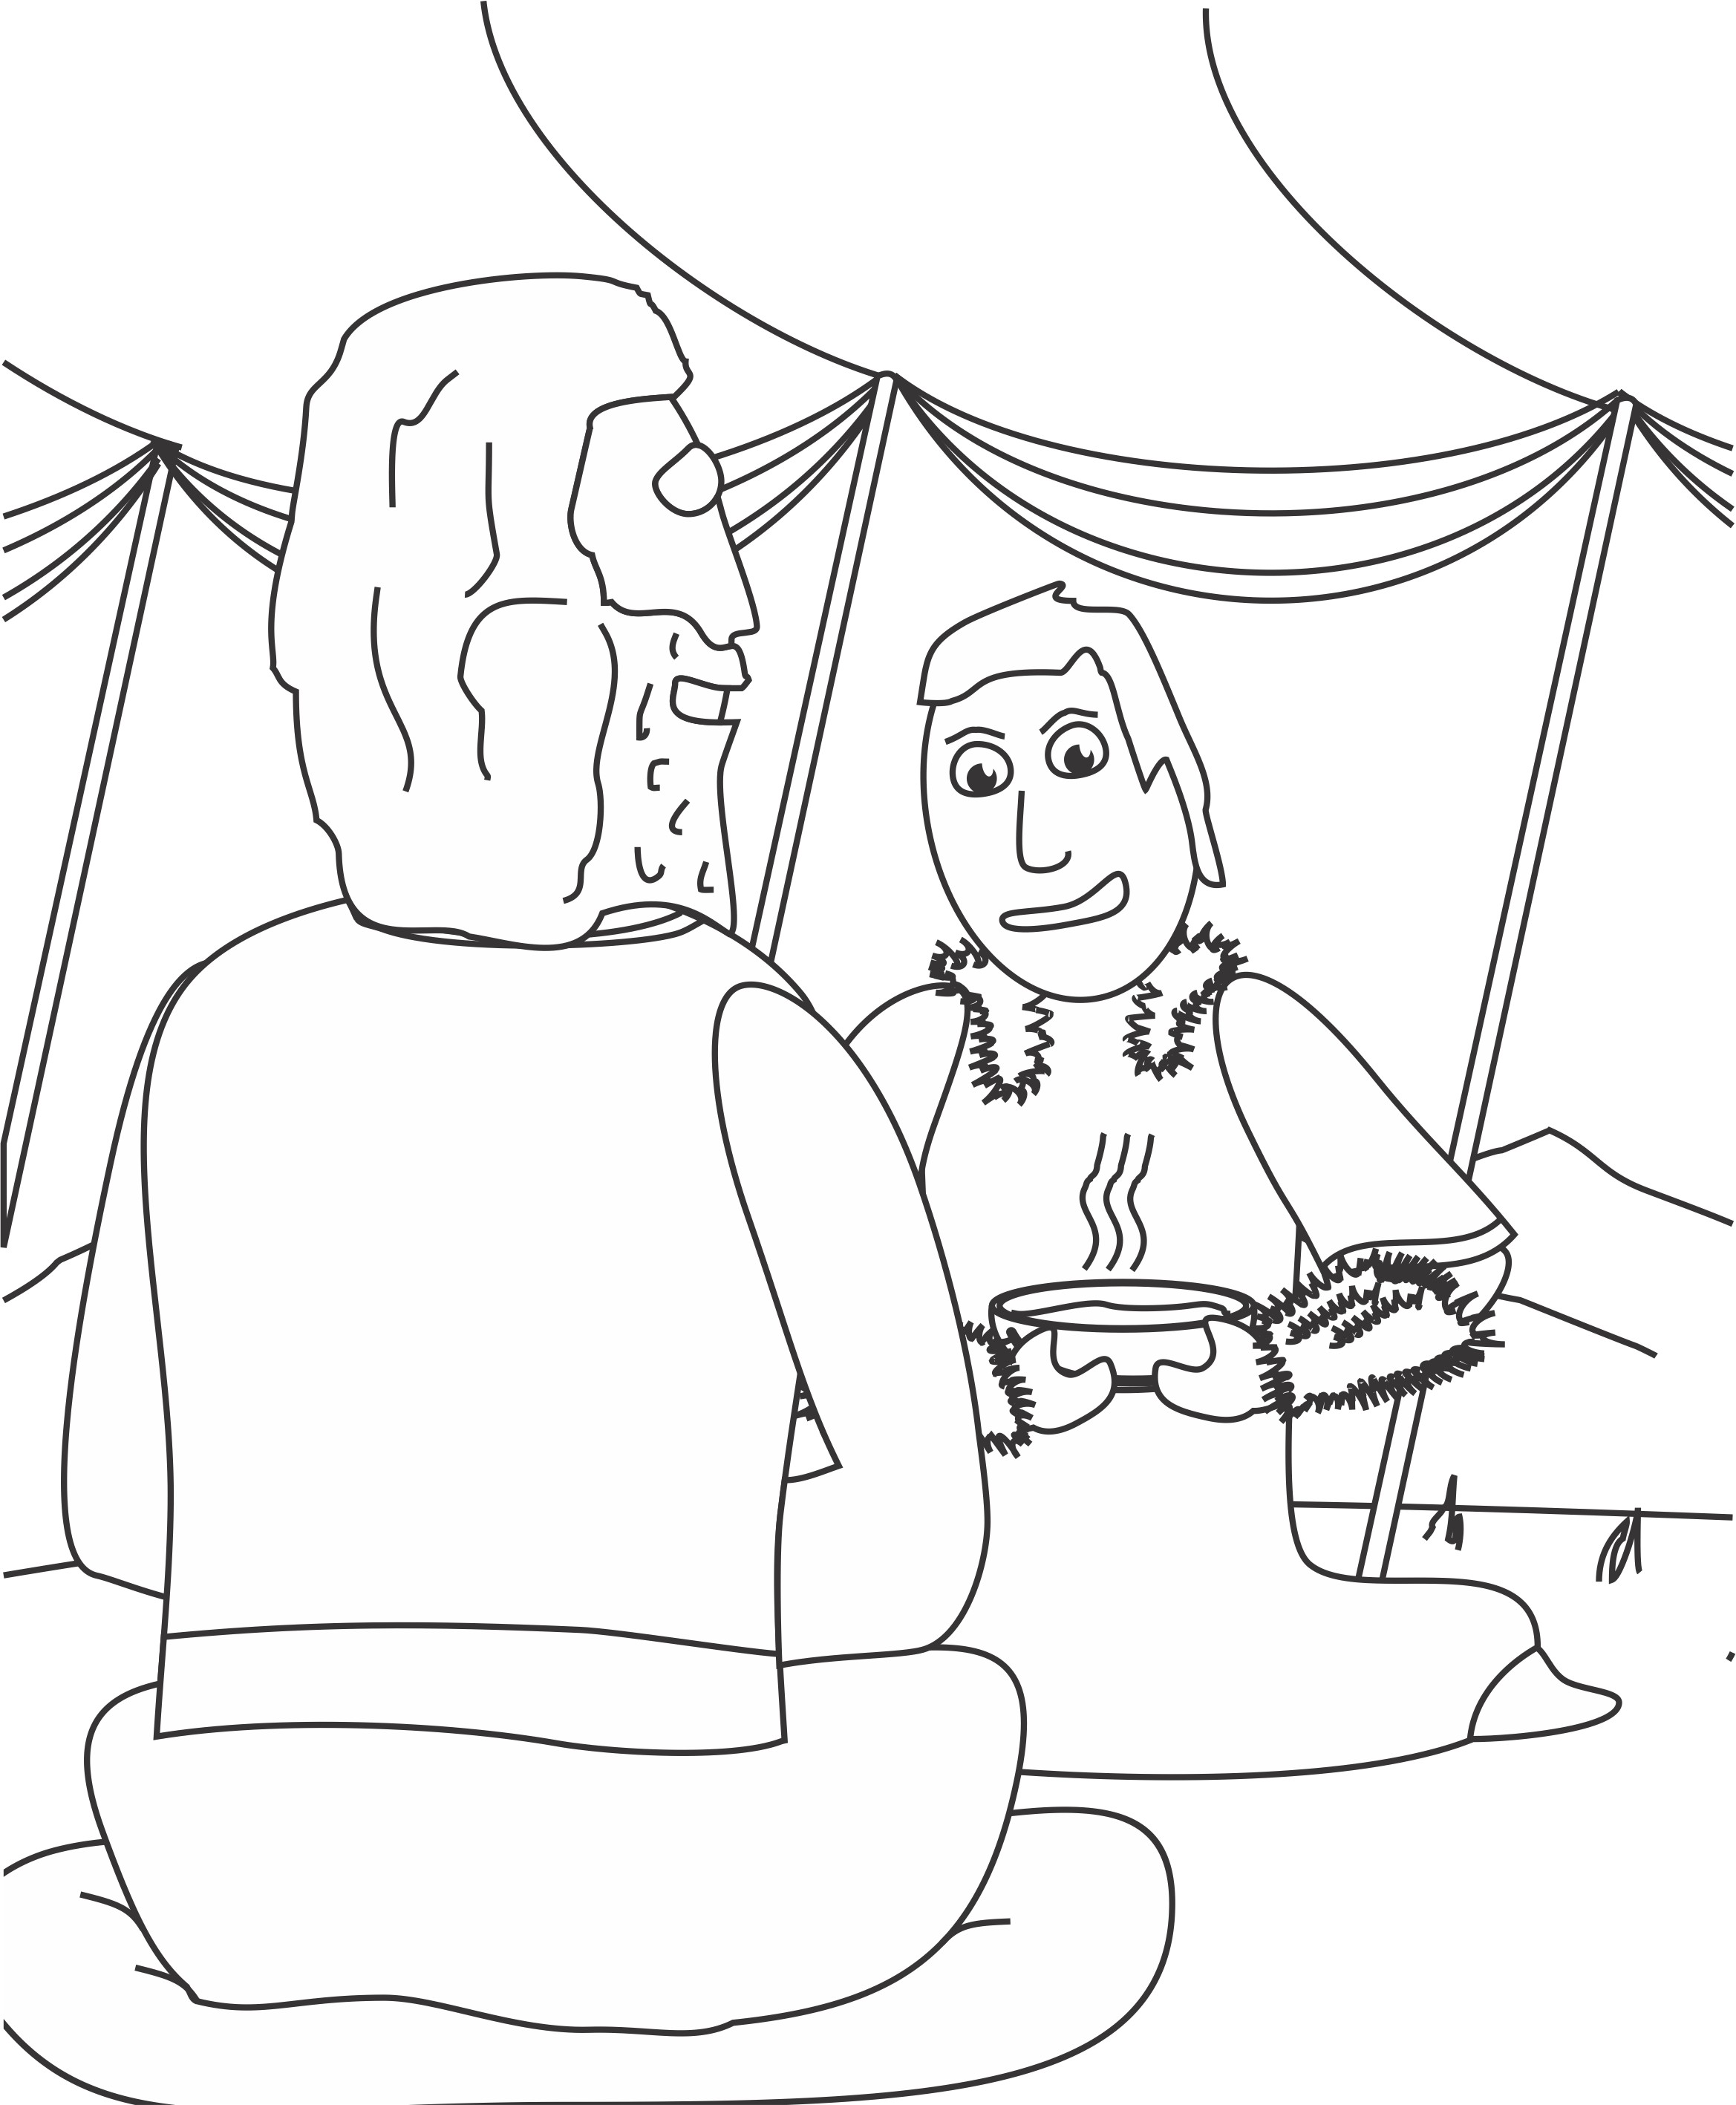 2338x2835 Coloring Pages For Jacob And Esau Best Of Jacob And Esau Coloring